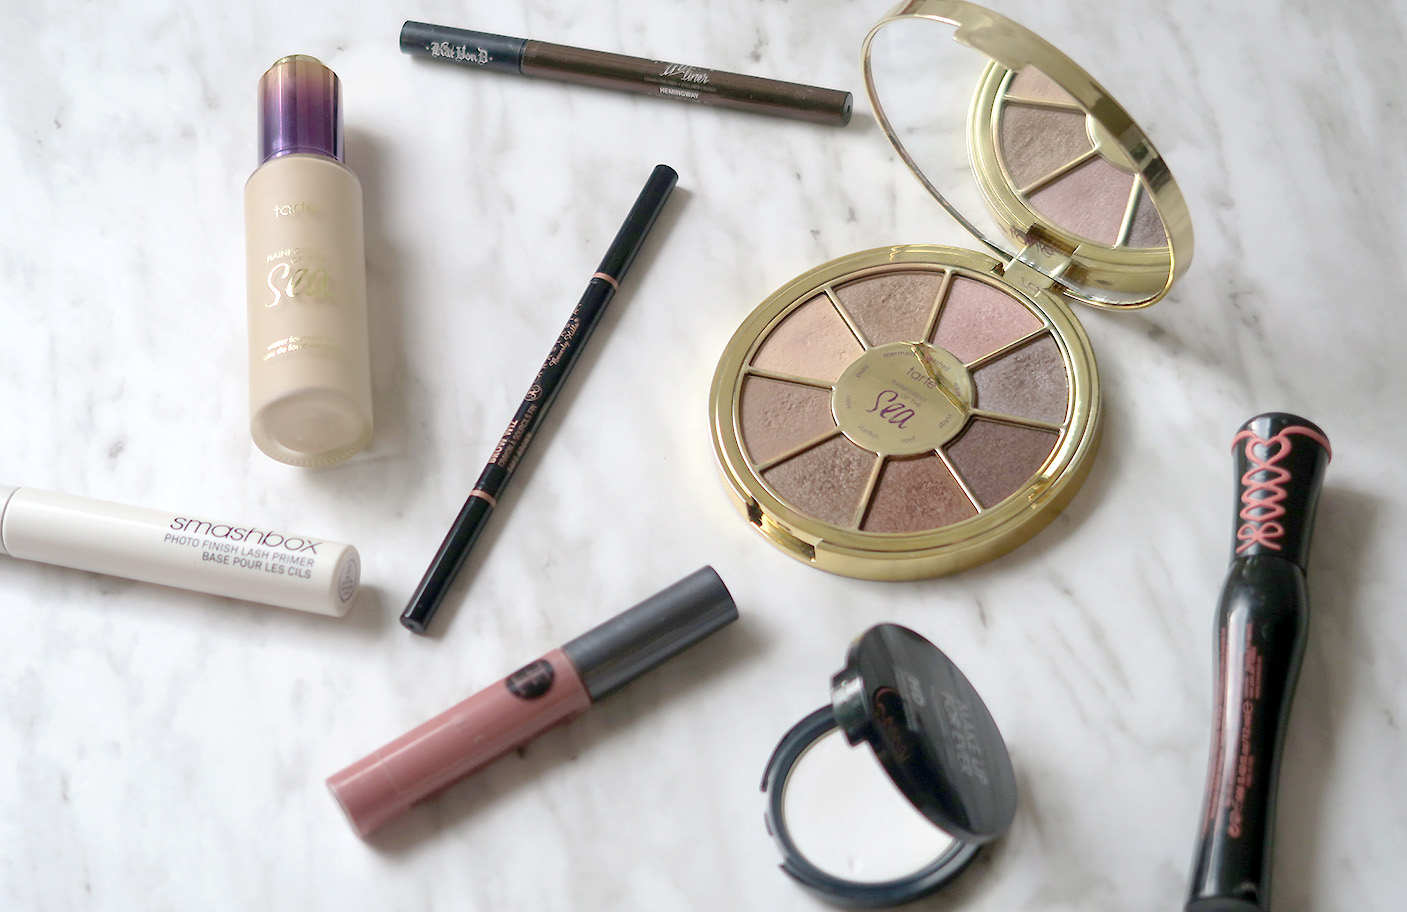 My current favourite summer makeup products!